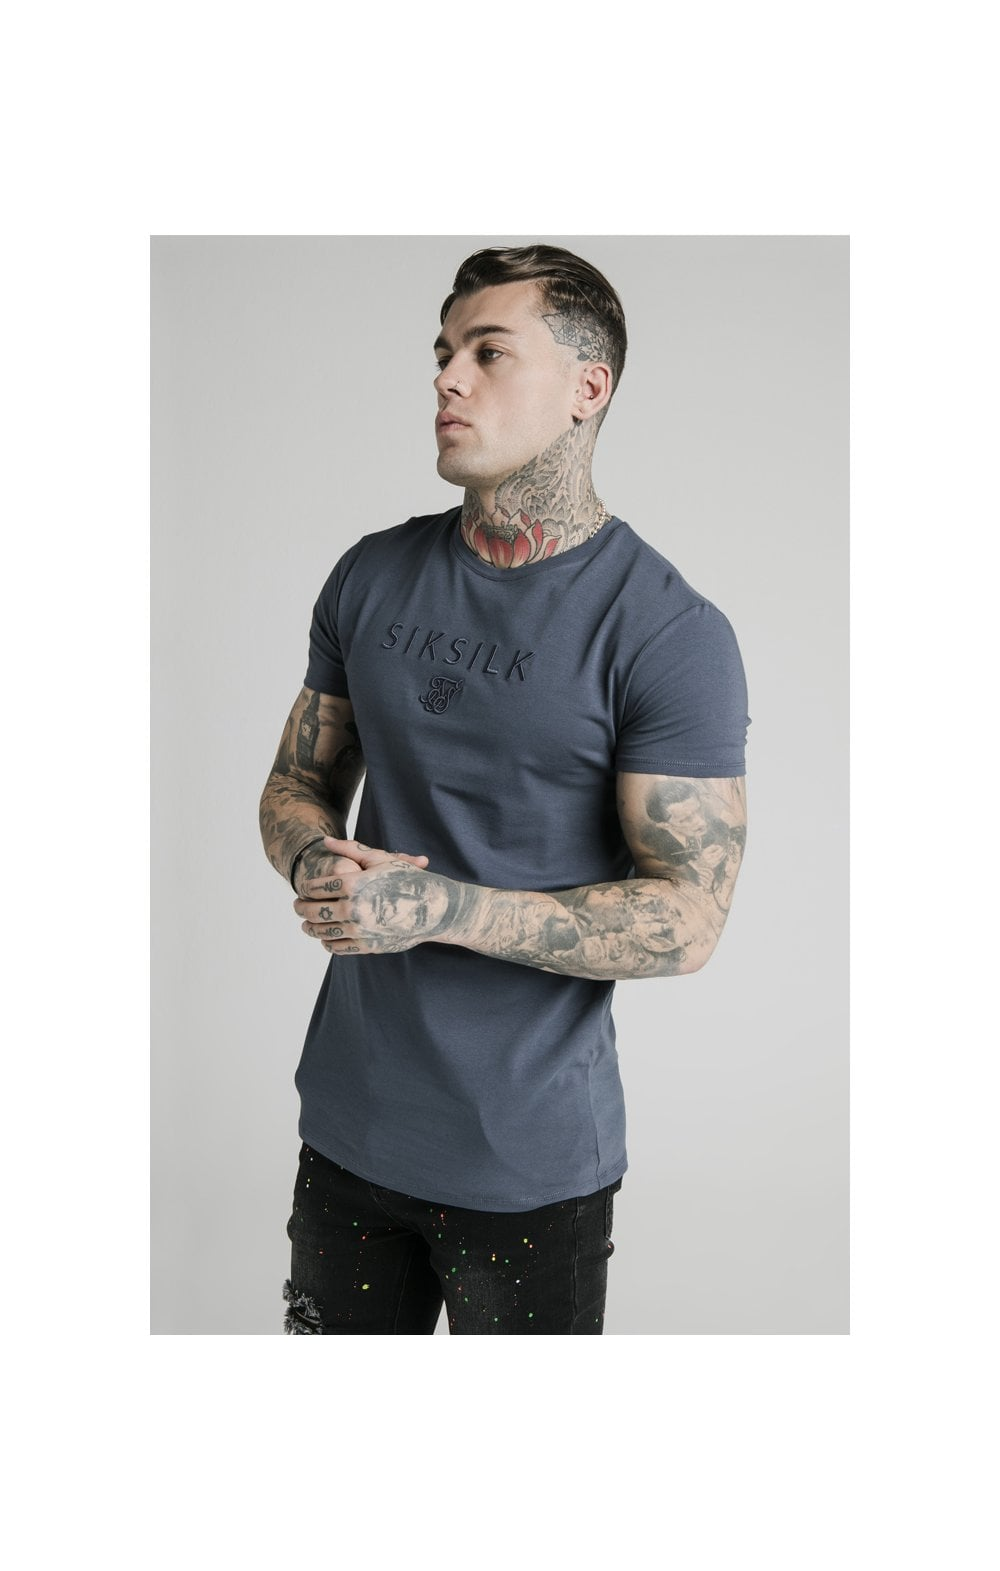 Load image into Gallery viewer, SikSilk S/S Astro Gym Tee - Cosmic Slate